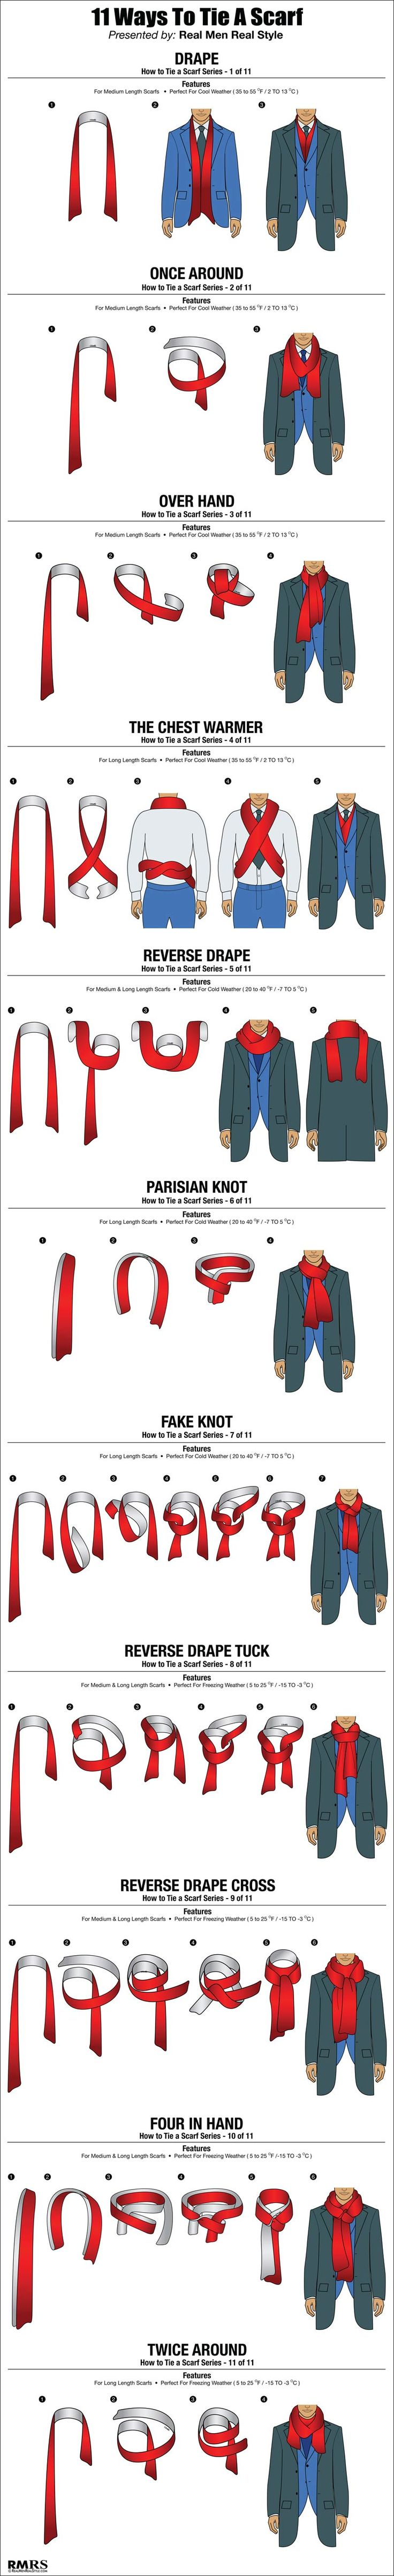 How To Tie A Scarf Chart - 11 Masculine Ways To Tie Scarves